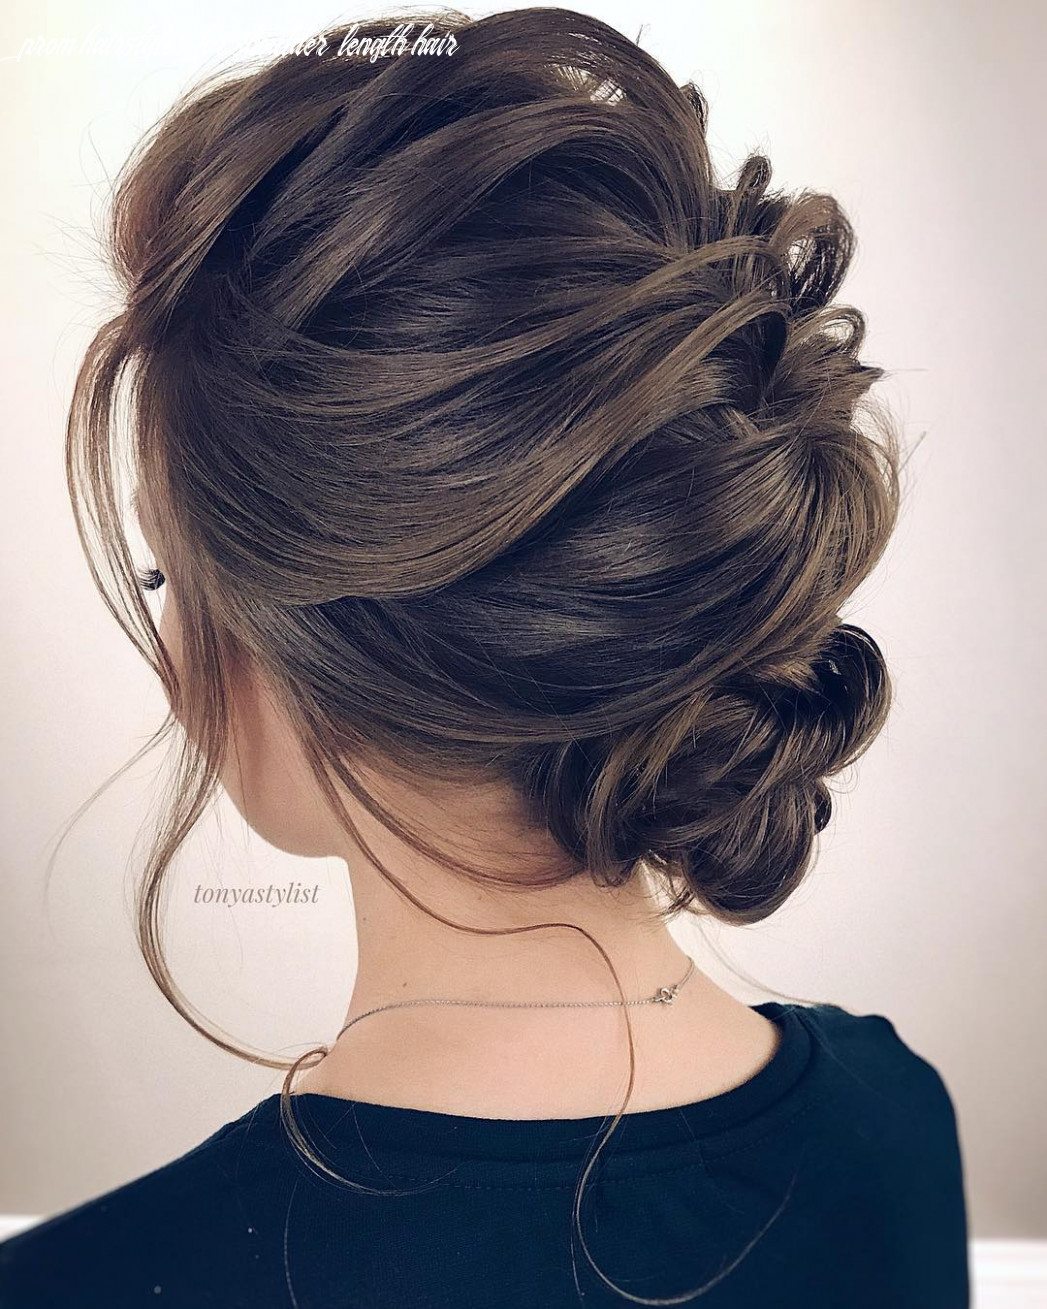 12 Updos for Medium Length Hair - Prom & Homecoming Hairstyle ...